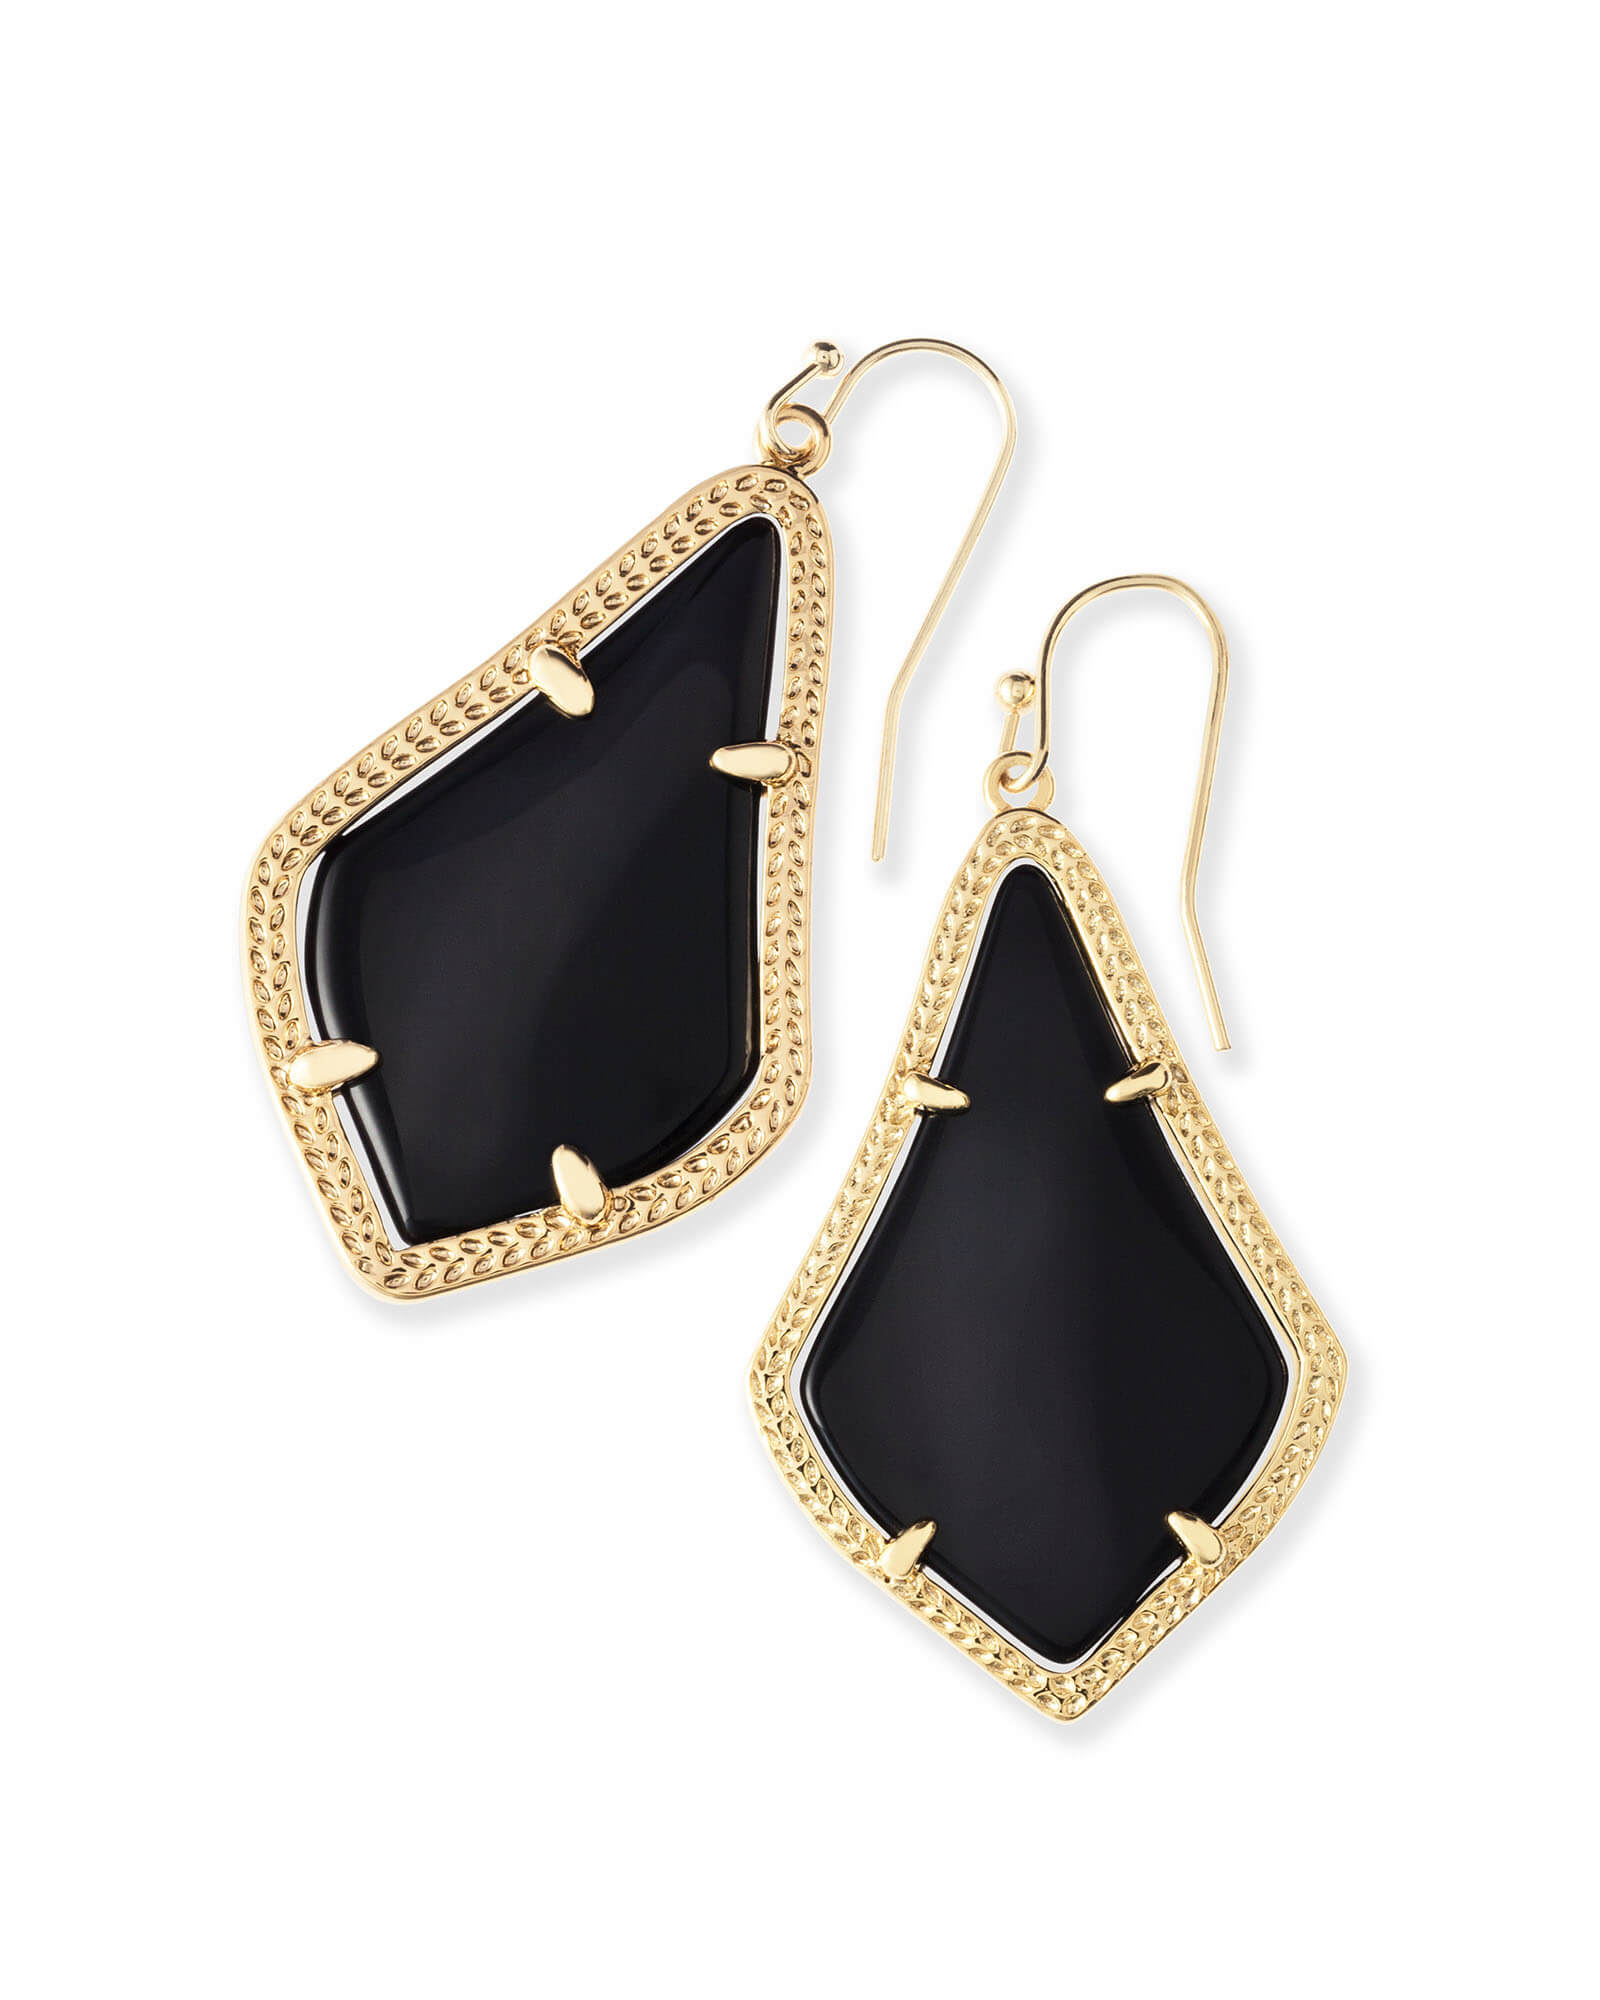 Alex Drop Earrings in Gold